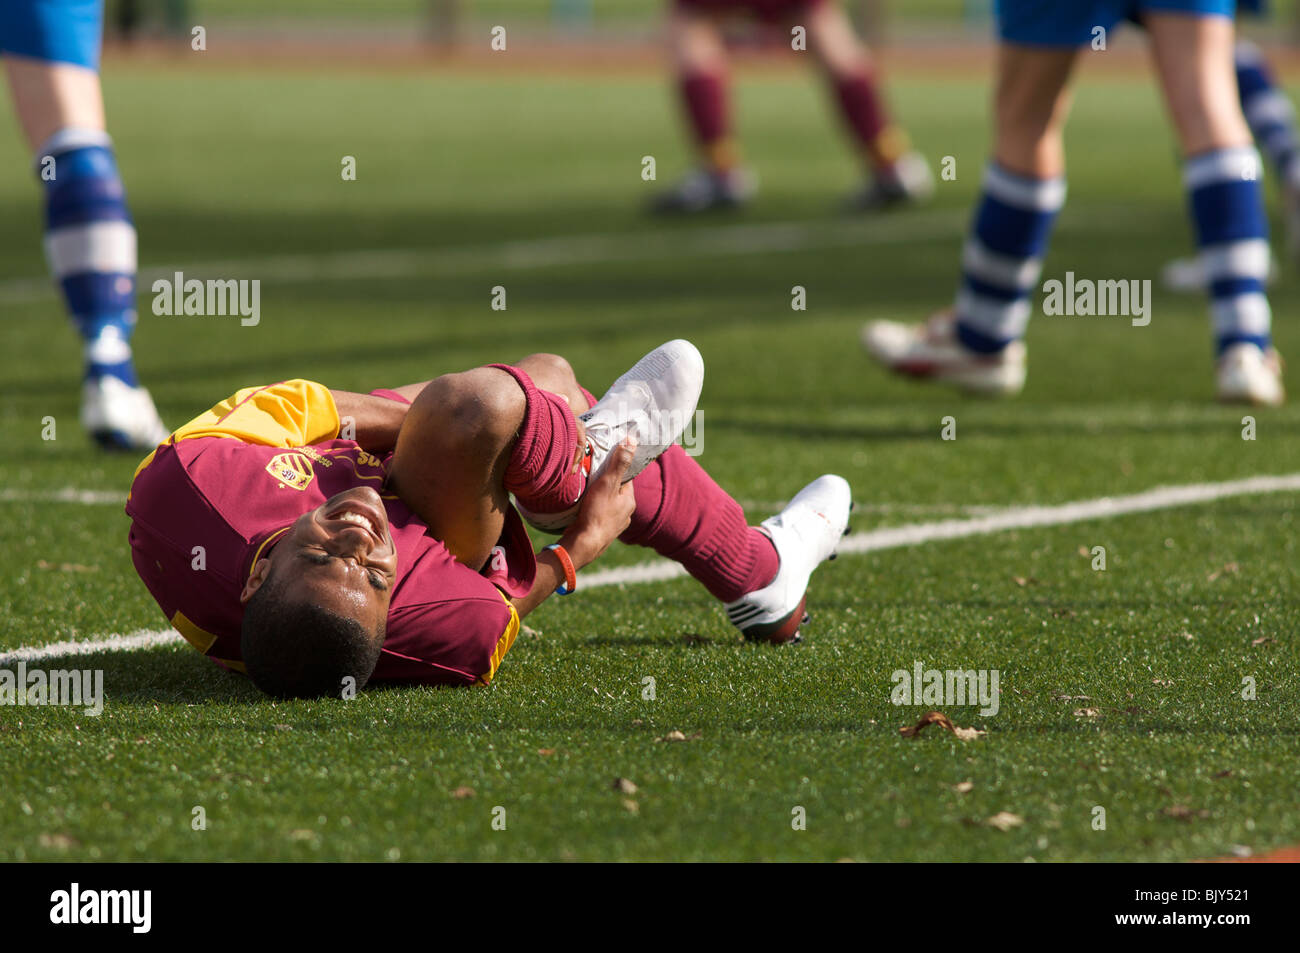 footballer writhes in agony after being injured - Stock Image